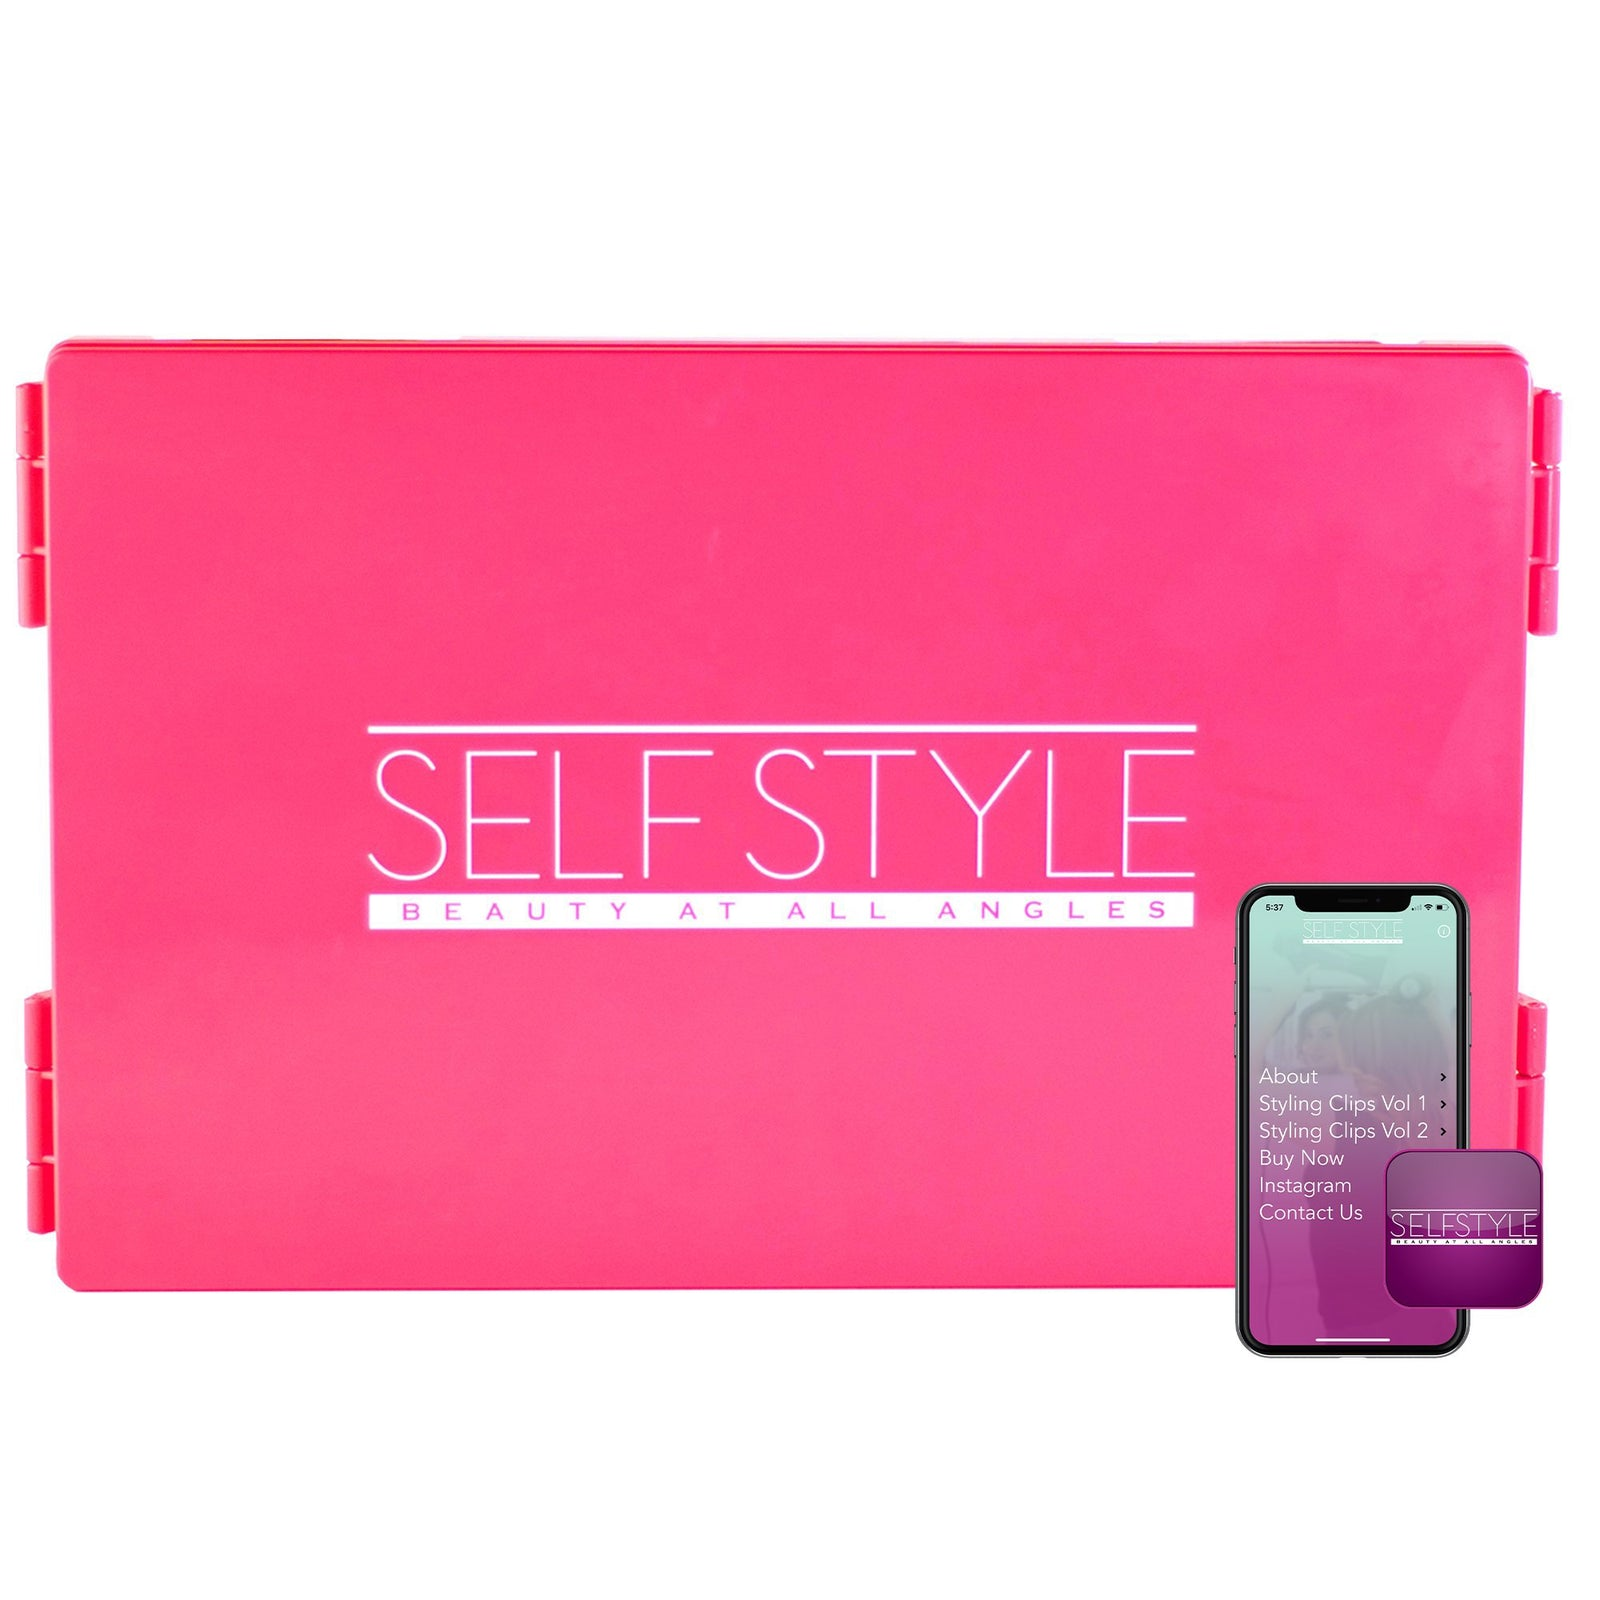 Self Style Travel Version - Pink